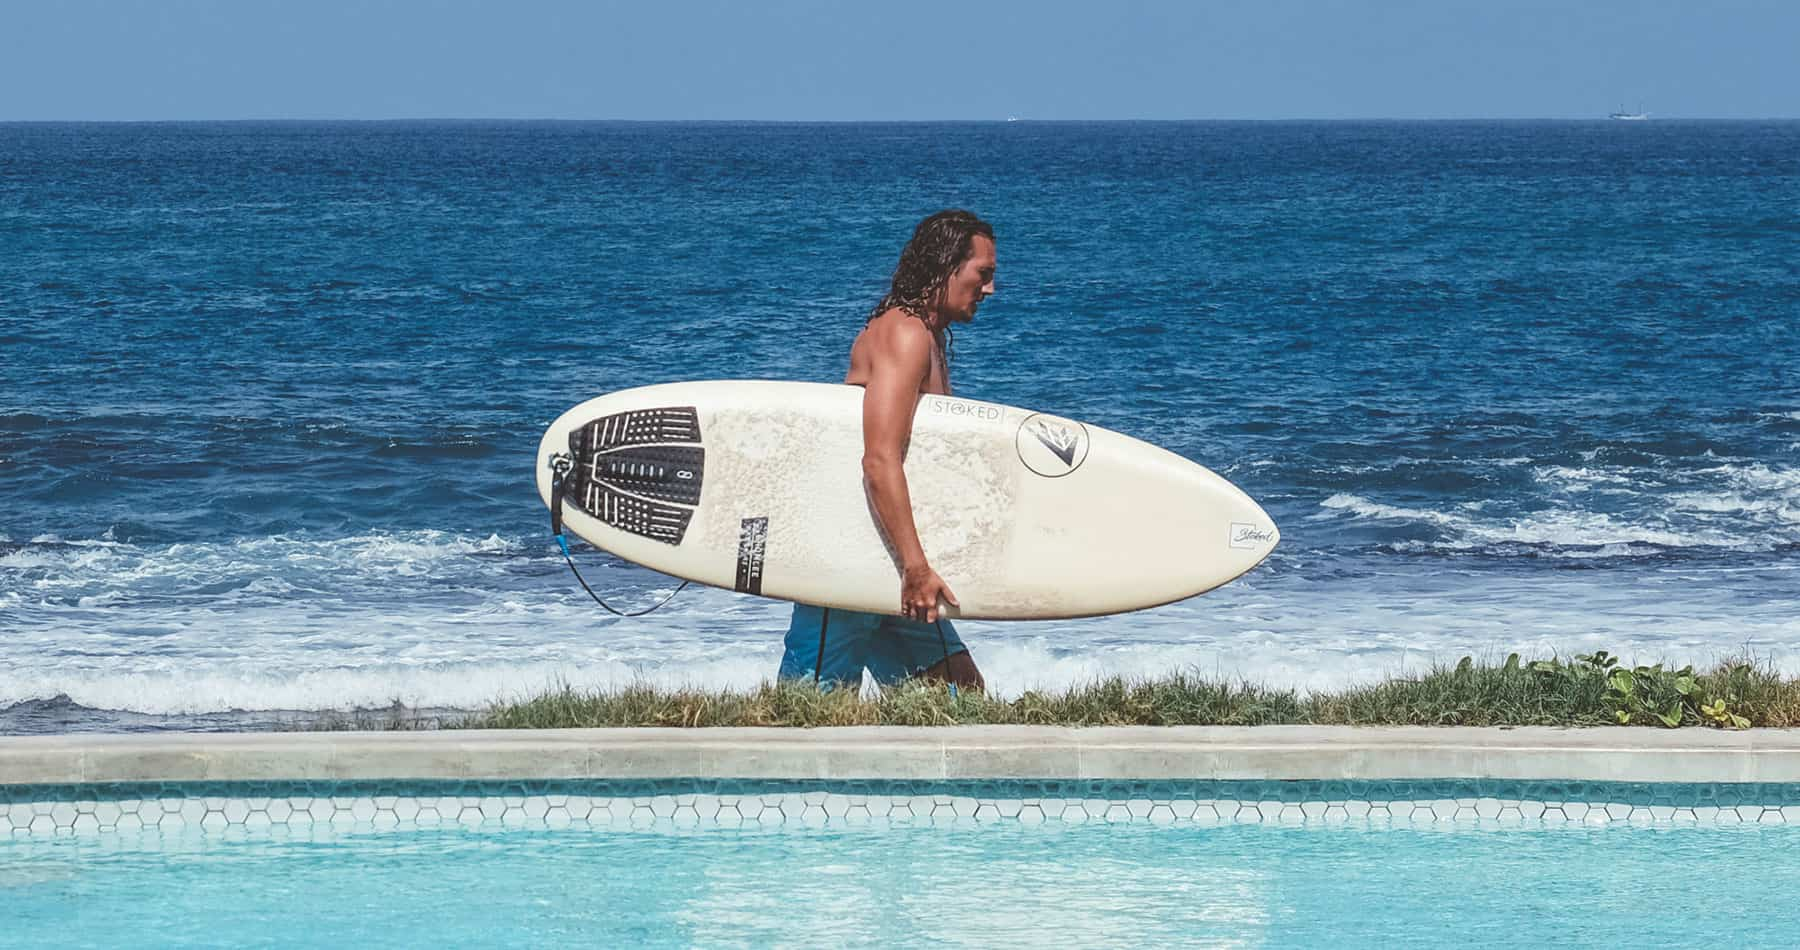 review firewire chumlee best surfboard for travel shortboard longboard travelling surfer